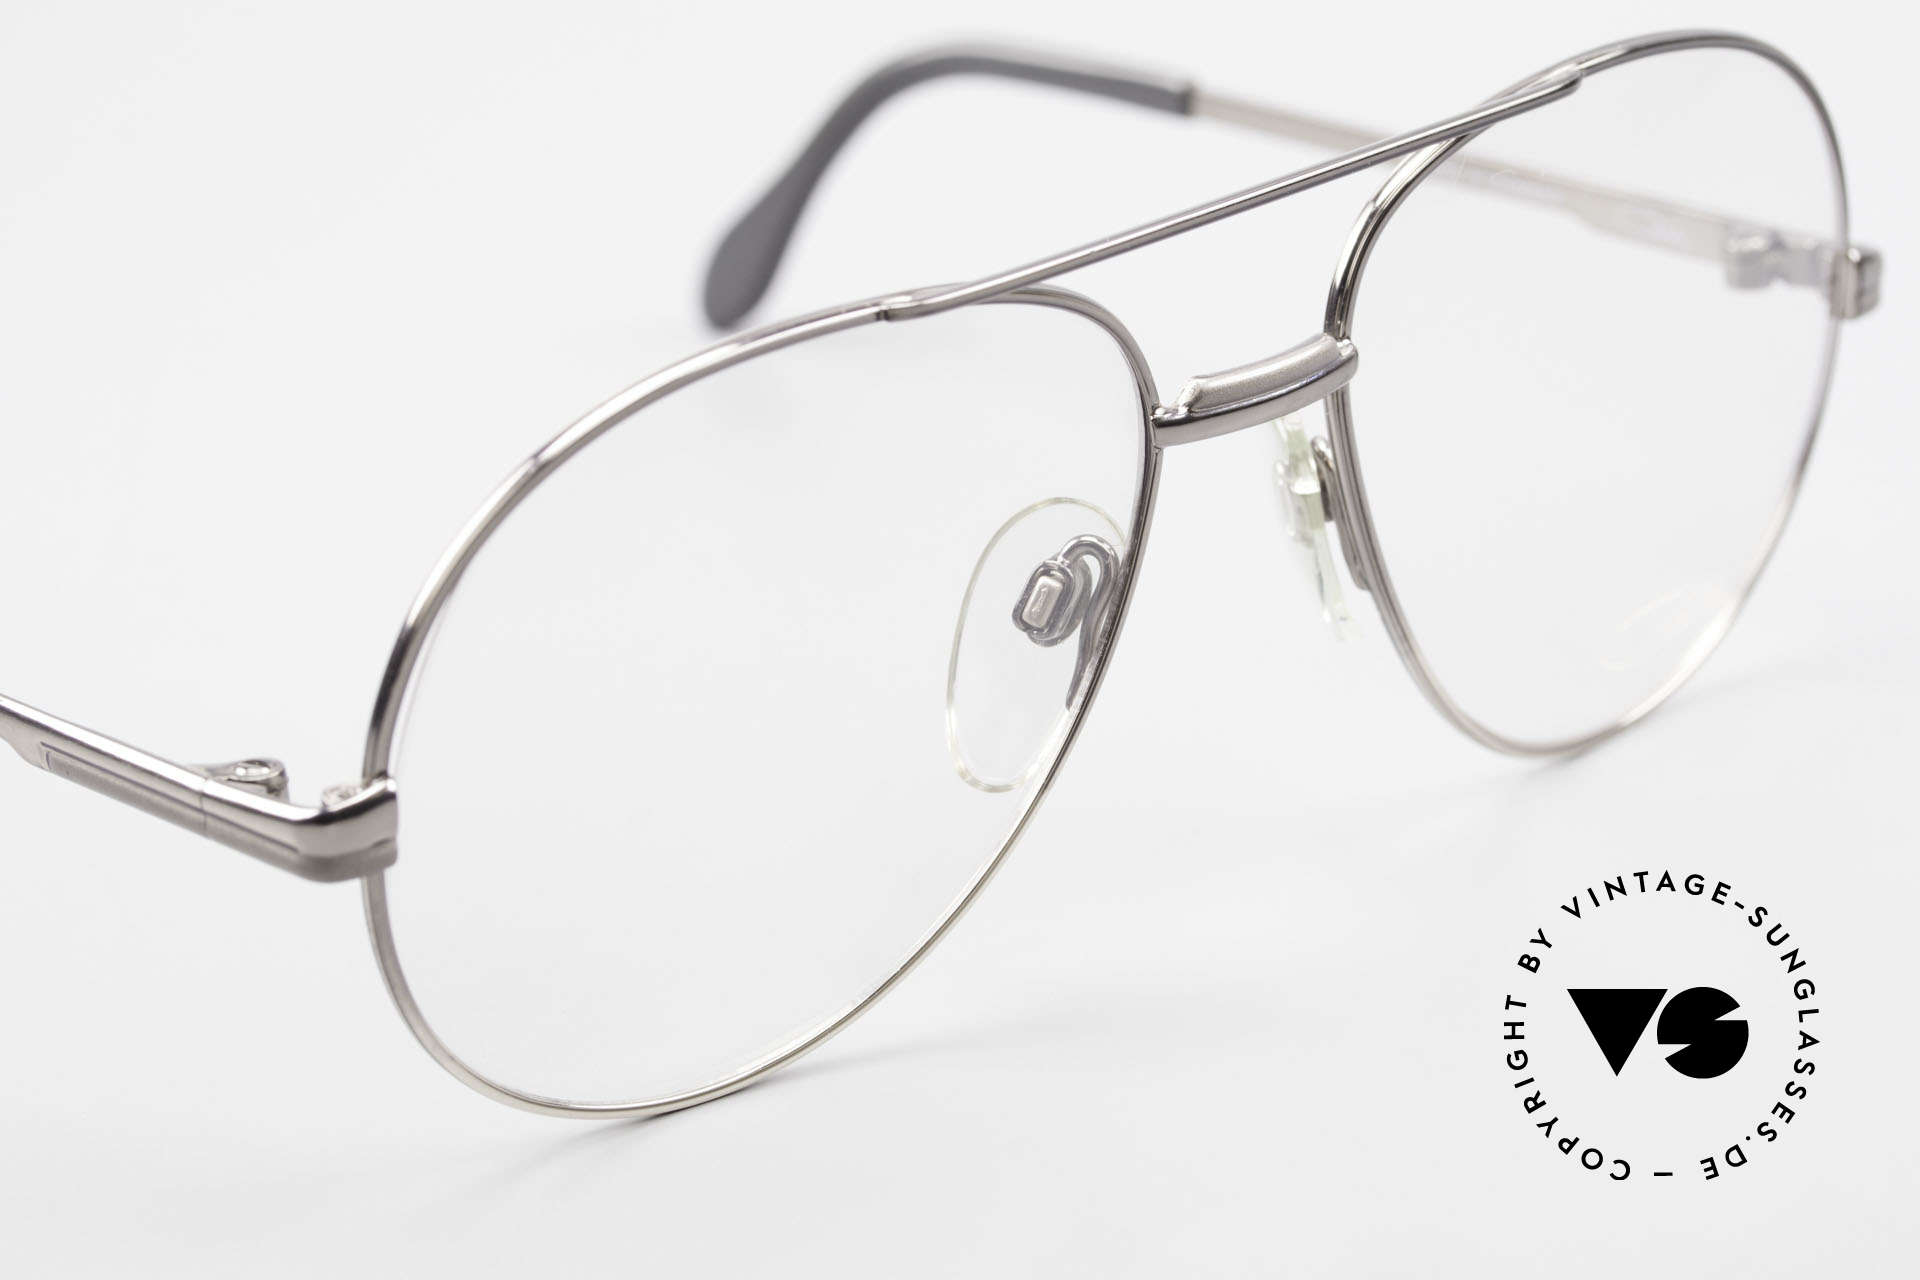 Cazal 708 First 700's West Germany Cazal, unworn original (NEW OLD STOCK), true collector's item, Made for Men